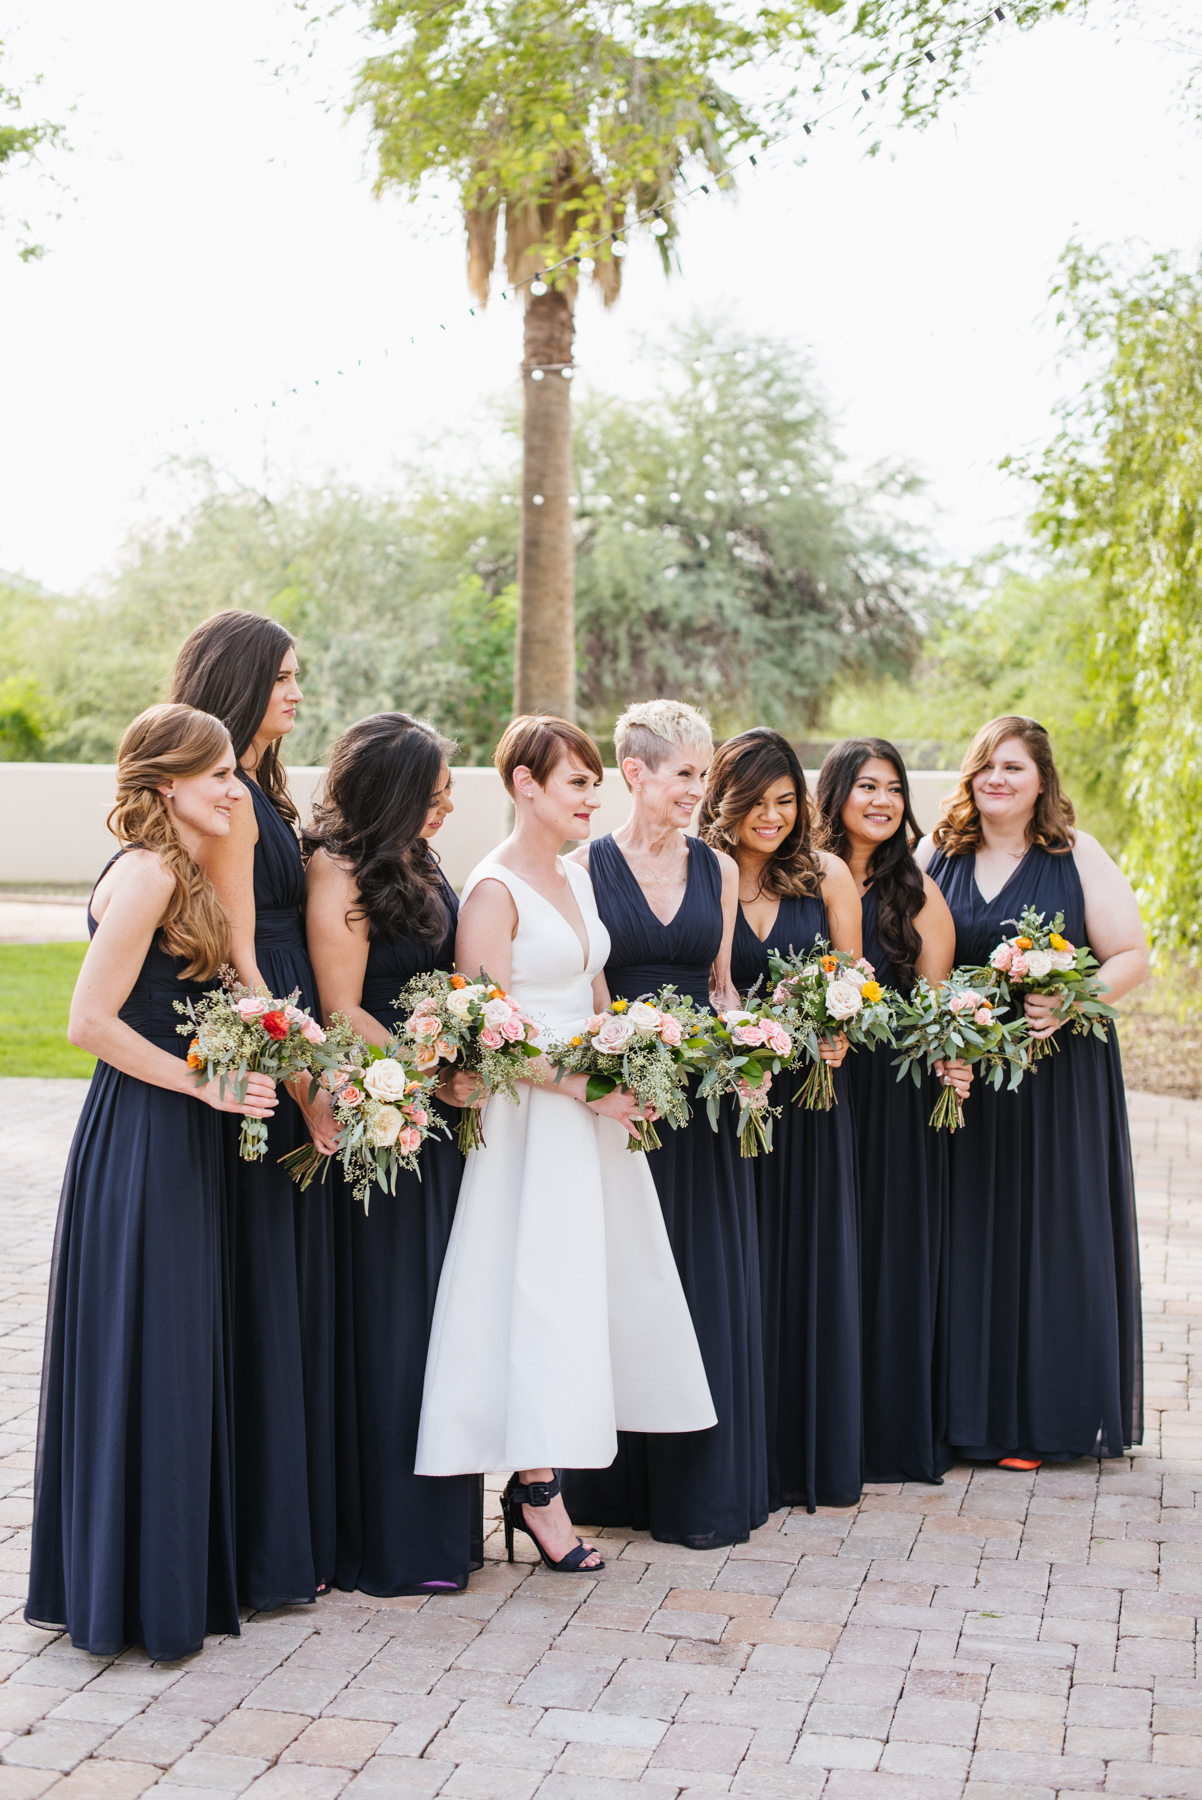 Secret Garden Event Center Wedding - Meredith Amadee Photography-66.jpg